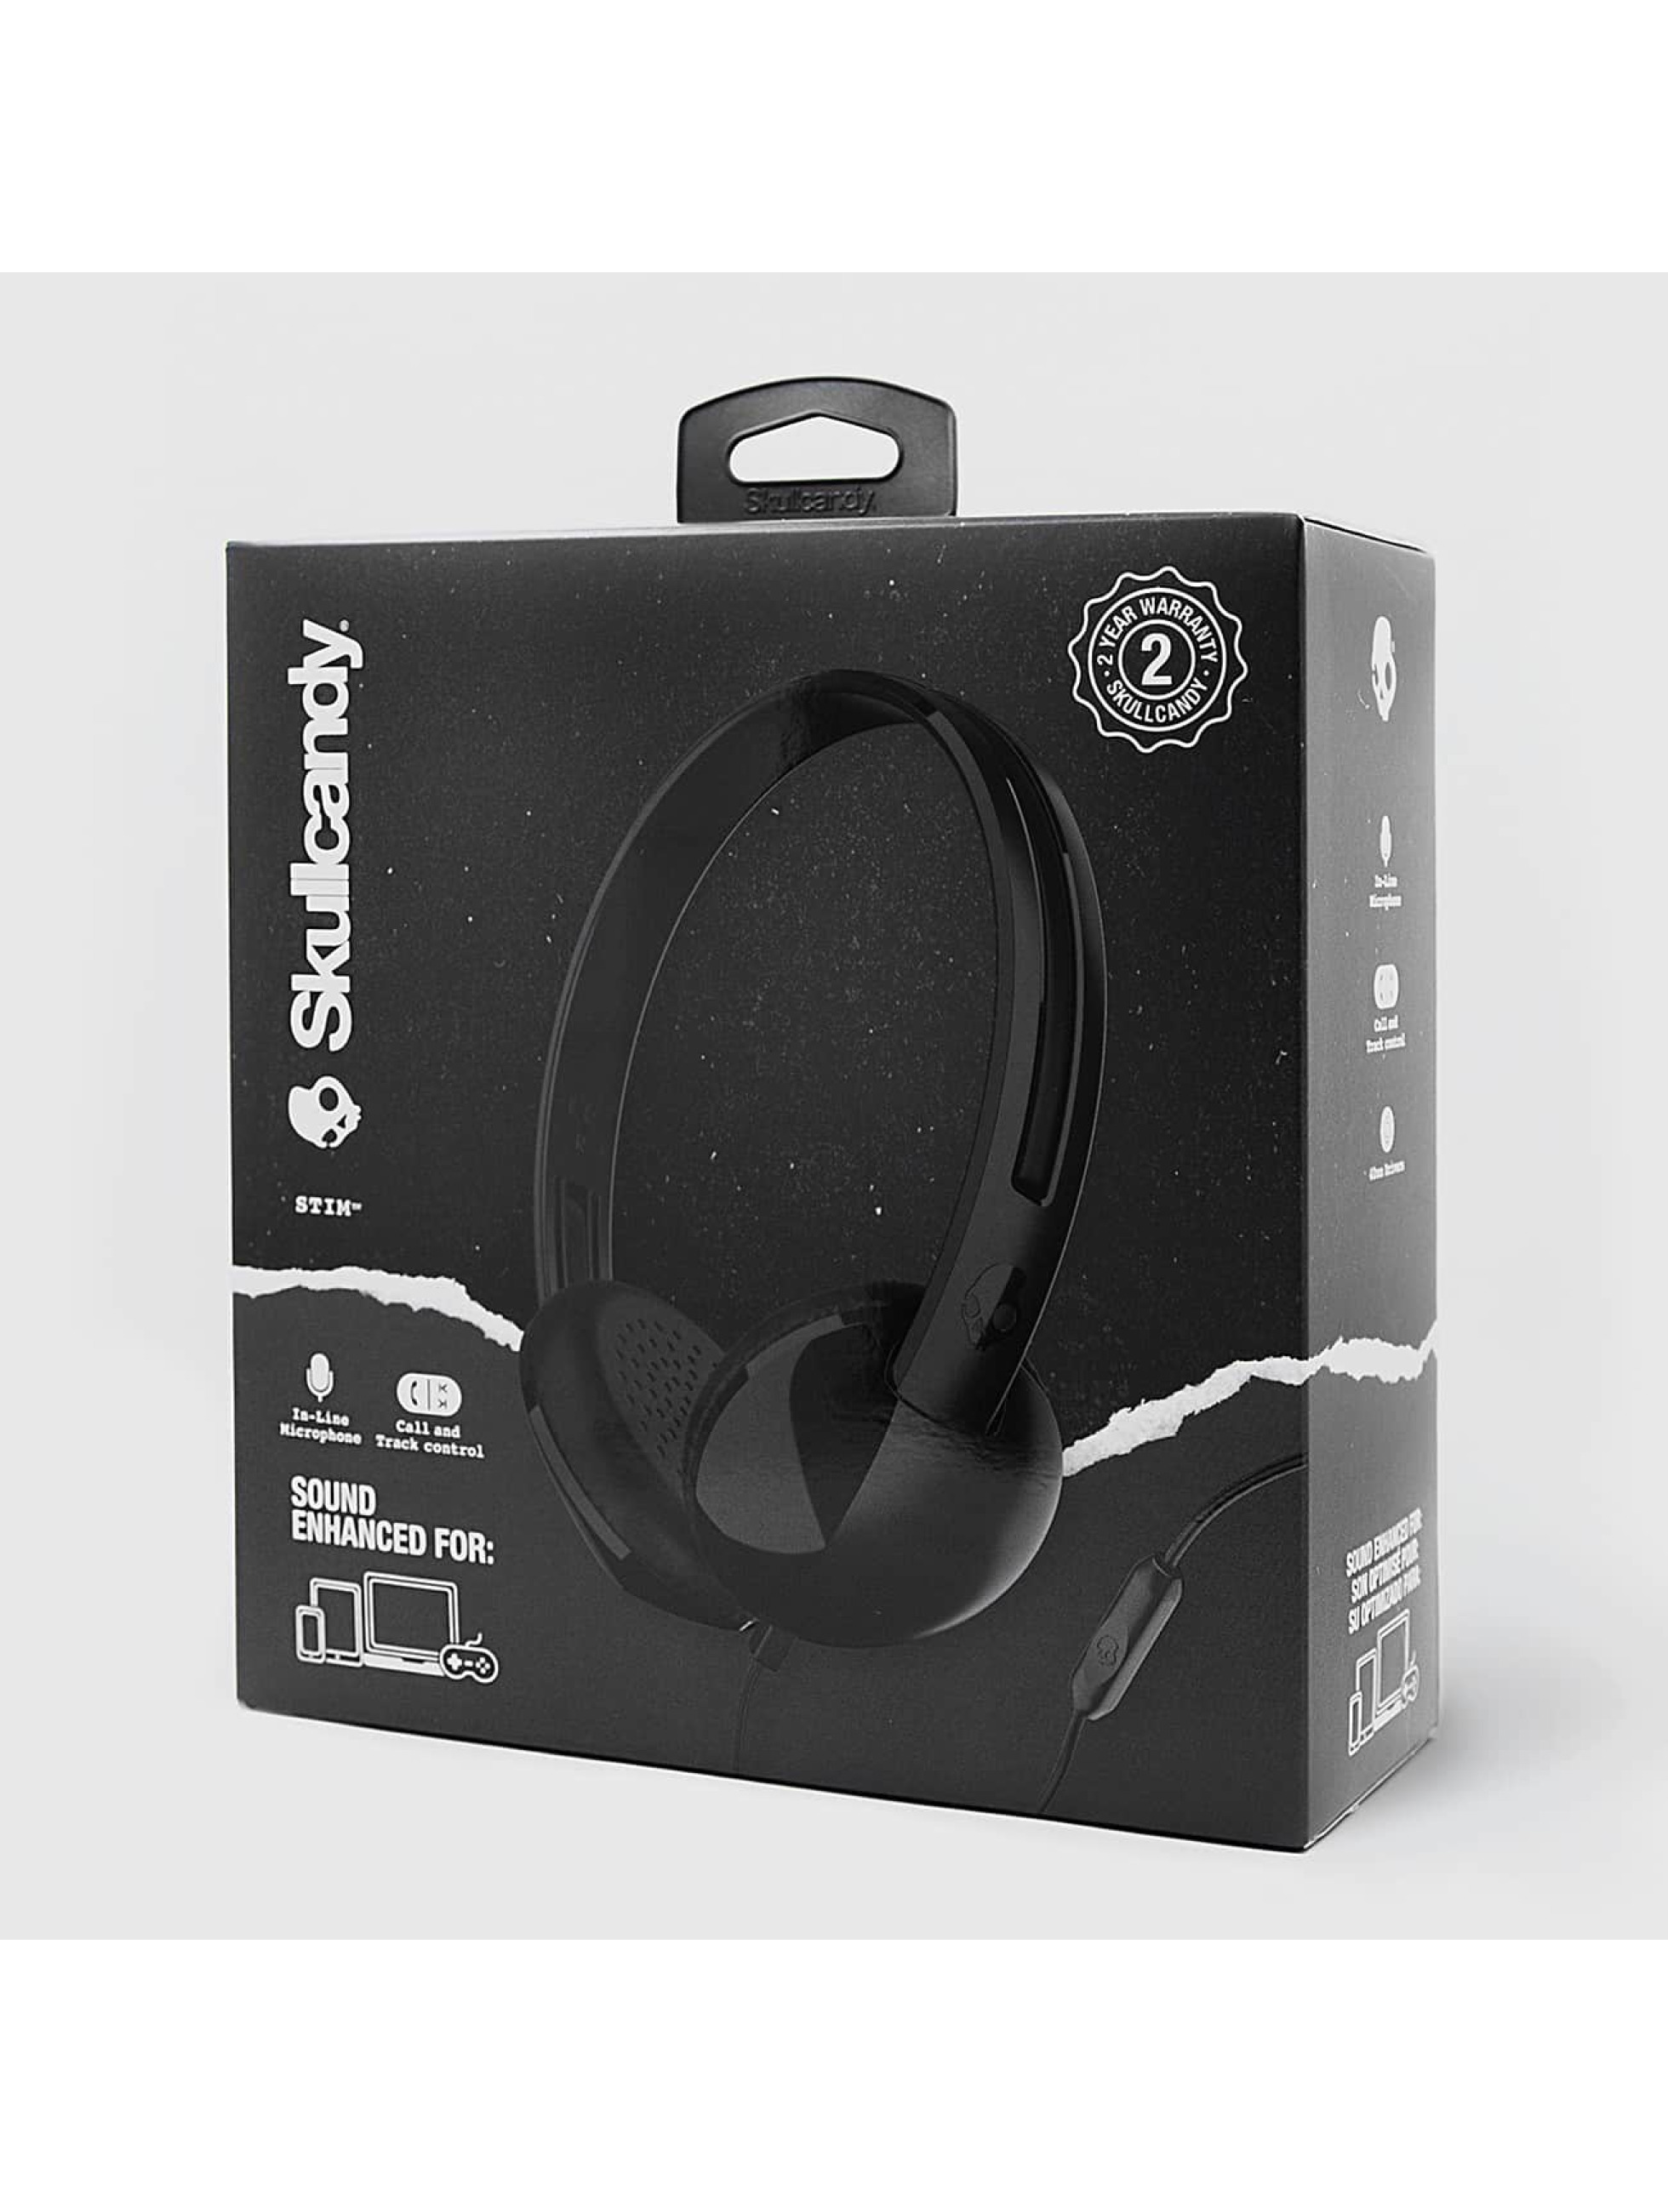 Skullcandy Casque audio & Ecouteurs Stim Mic 1 On Ear noir